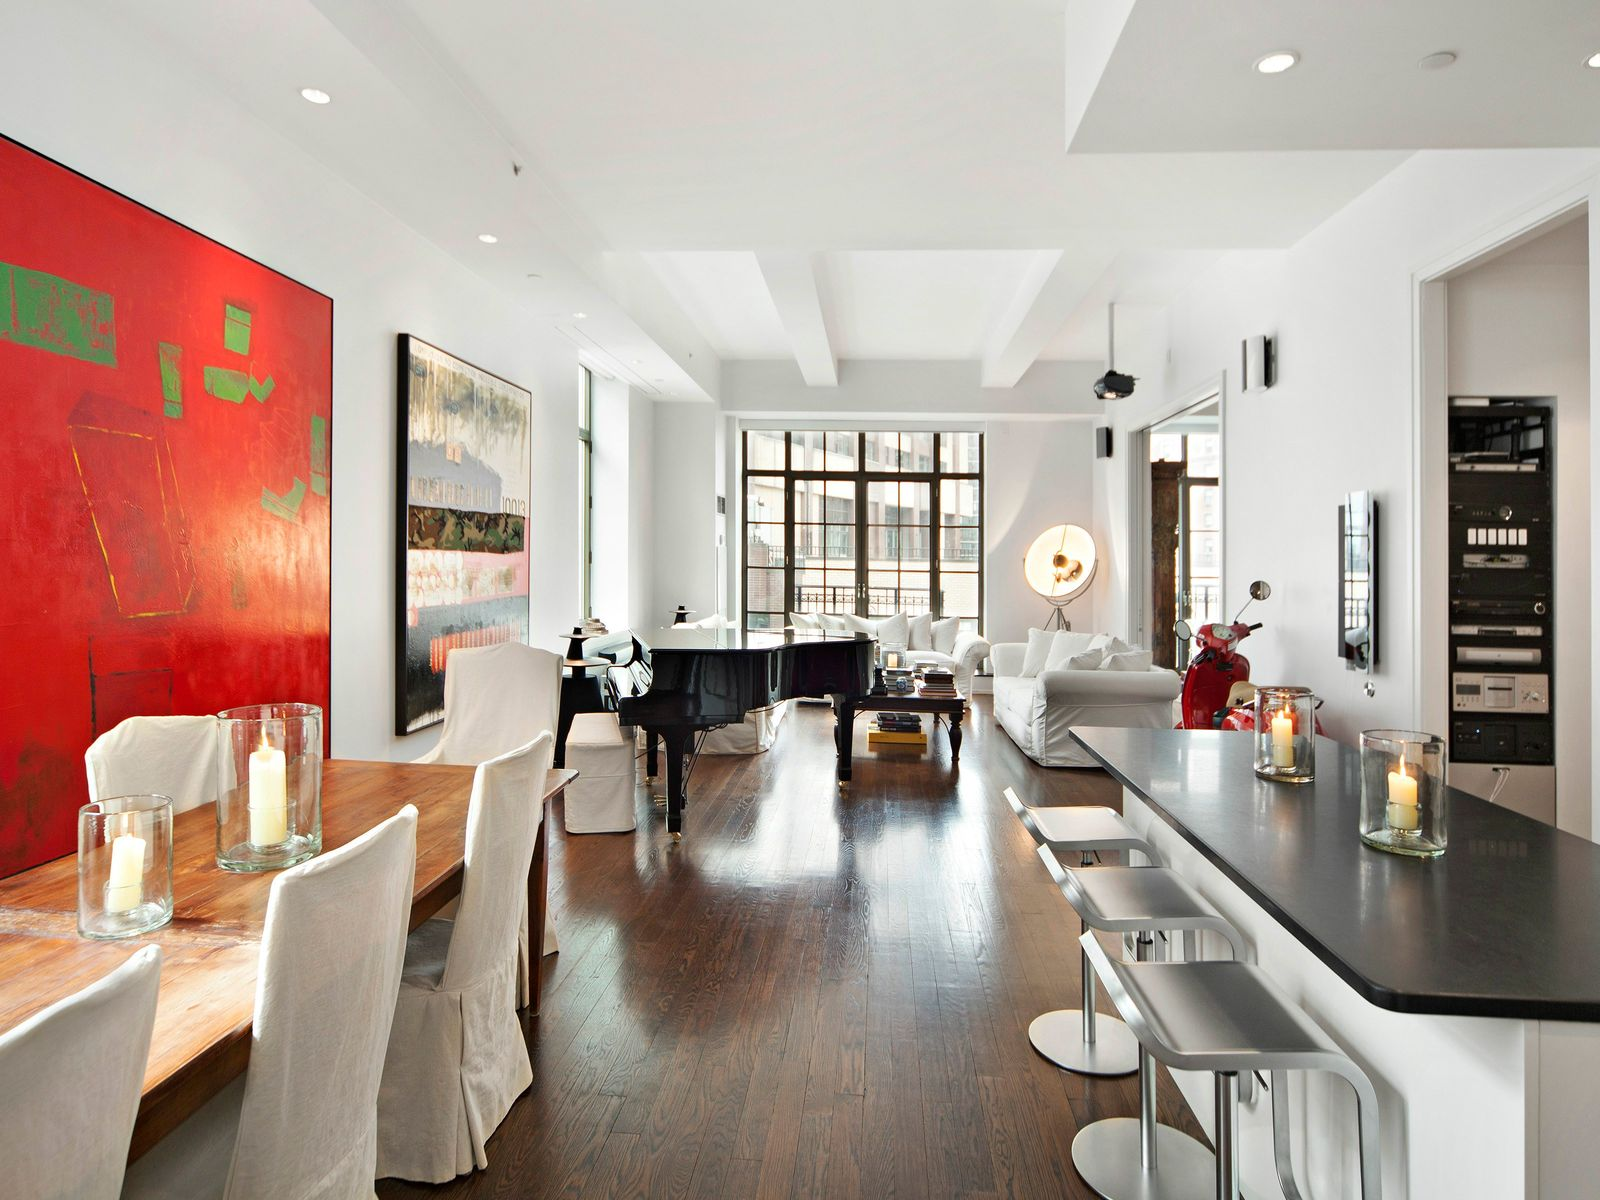 Luxury Loft in Lincoln Center, New York NY Condominium - New York City Real Estate